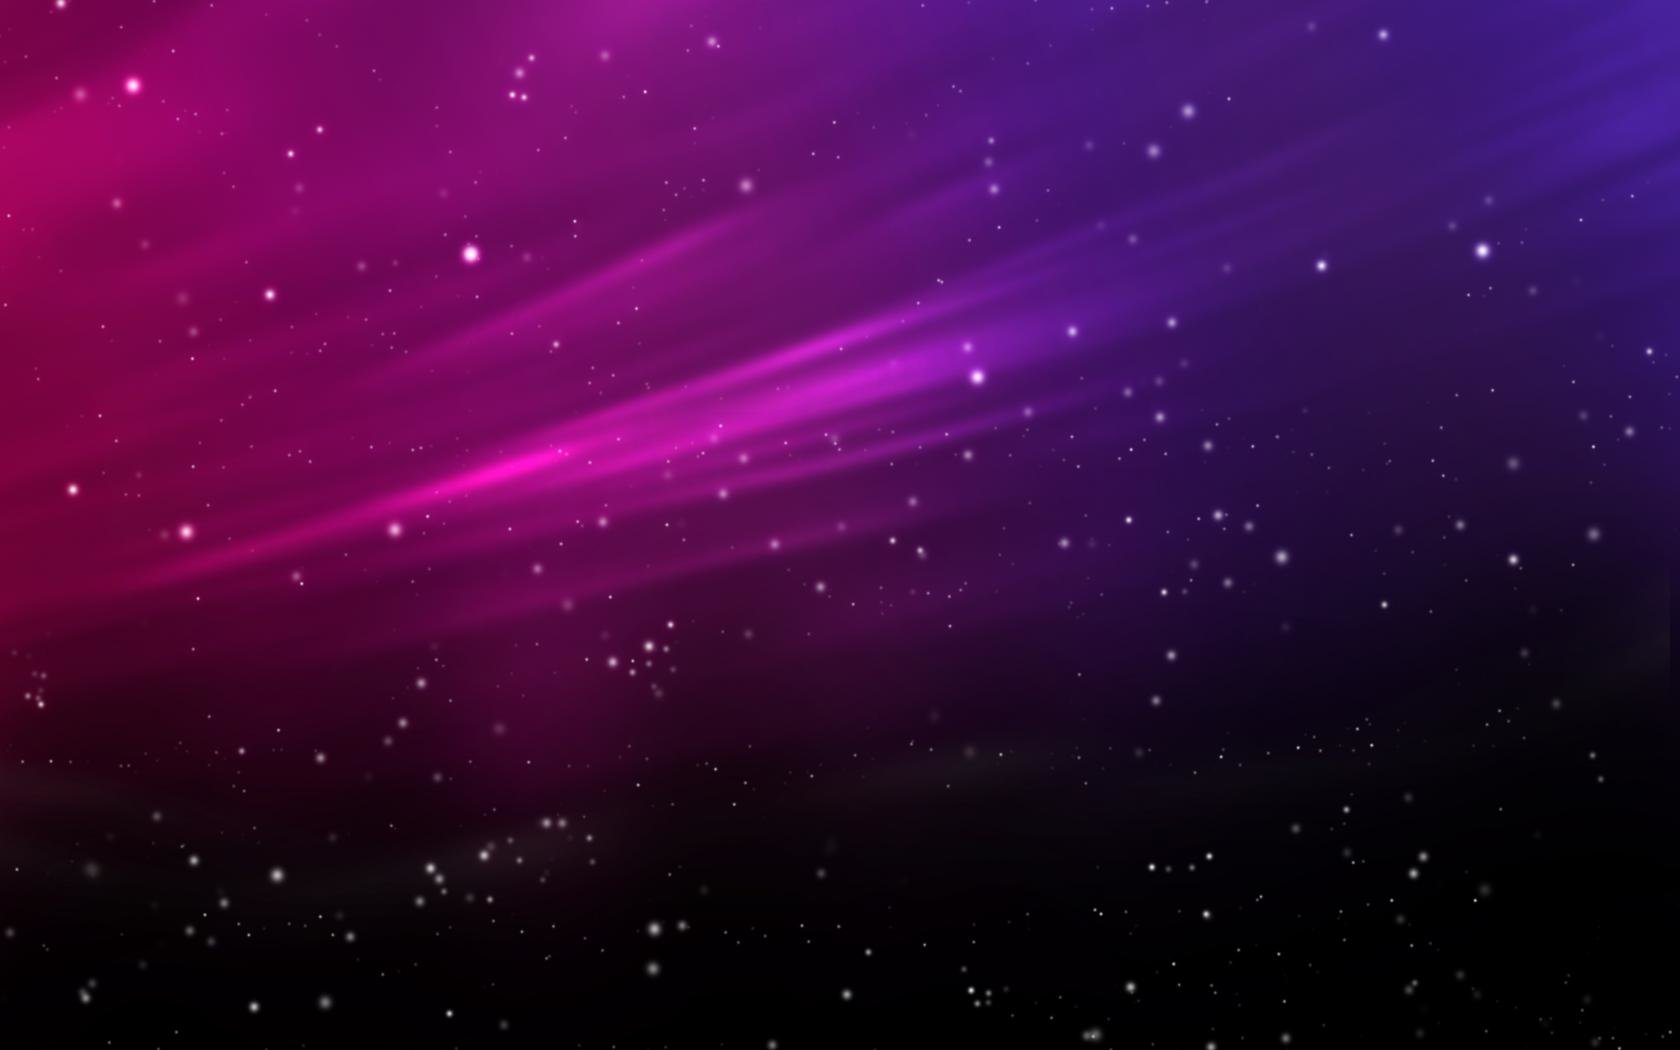 High resolution Purple Pink hd 1680x1050 background ID:195968 for desktop